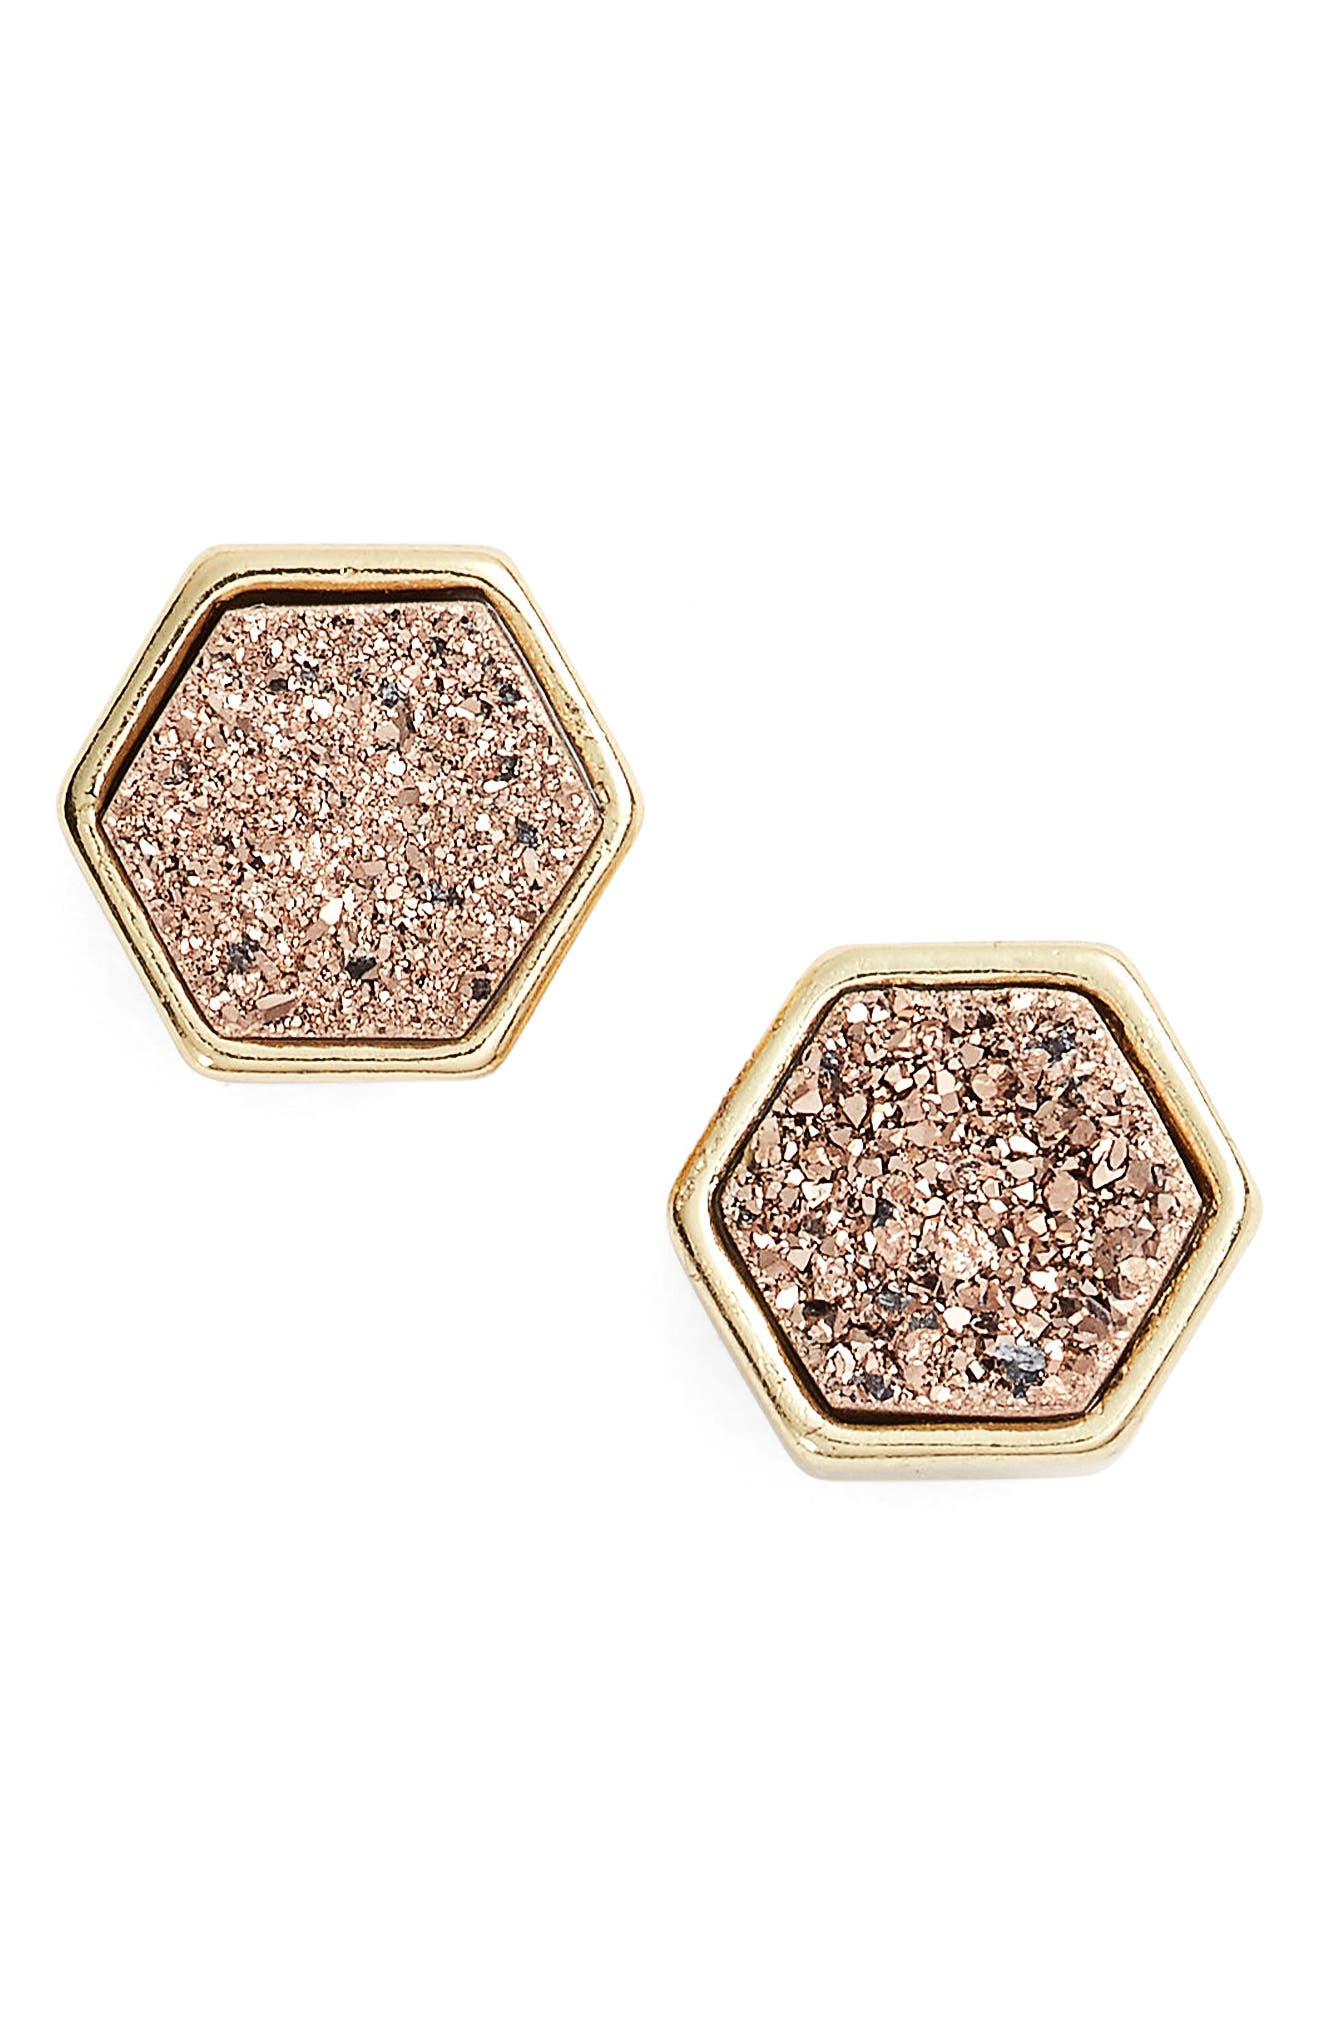 Elise M. Tempeste Hex Stud Earrings